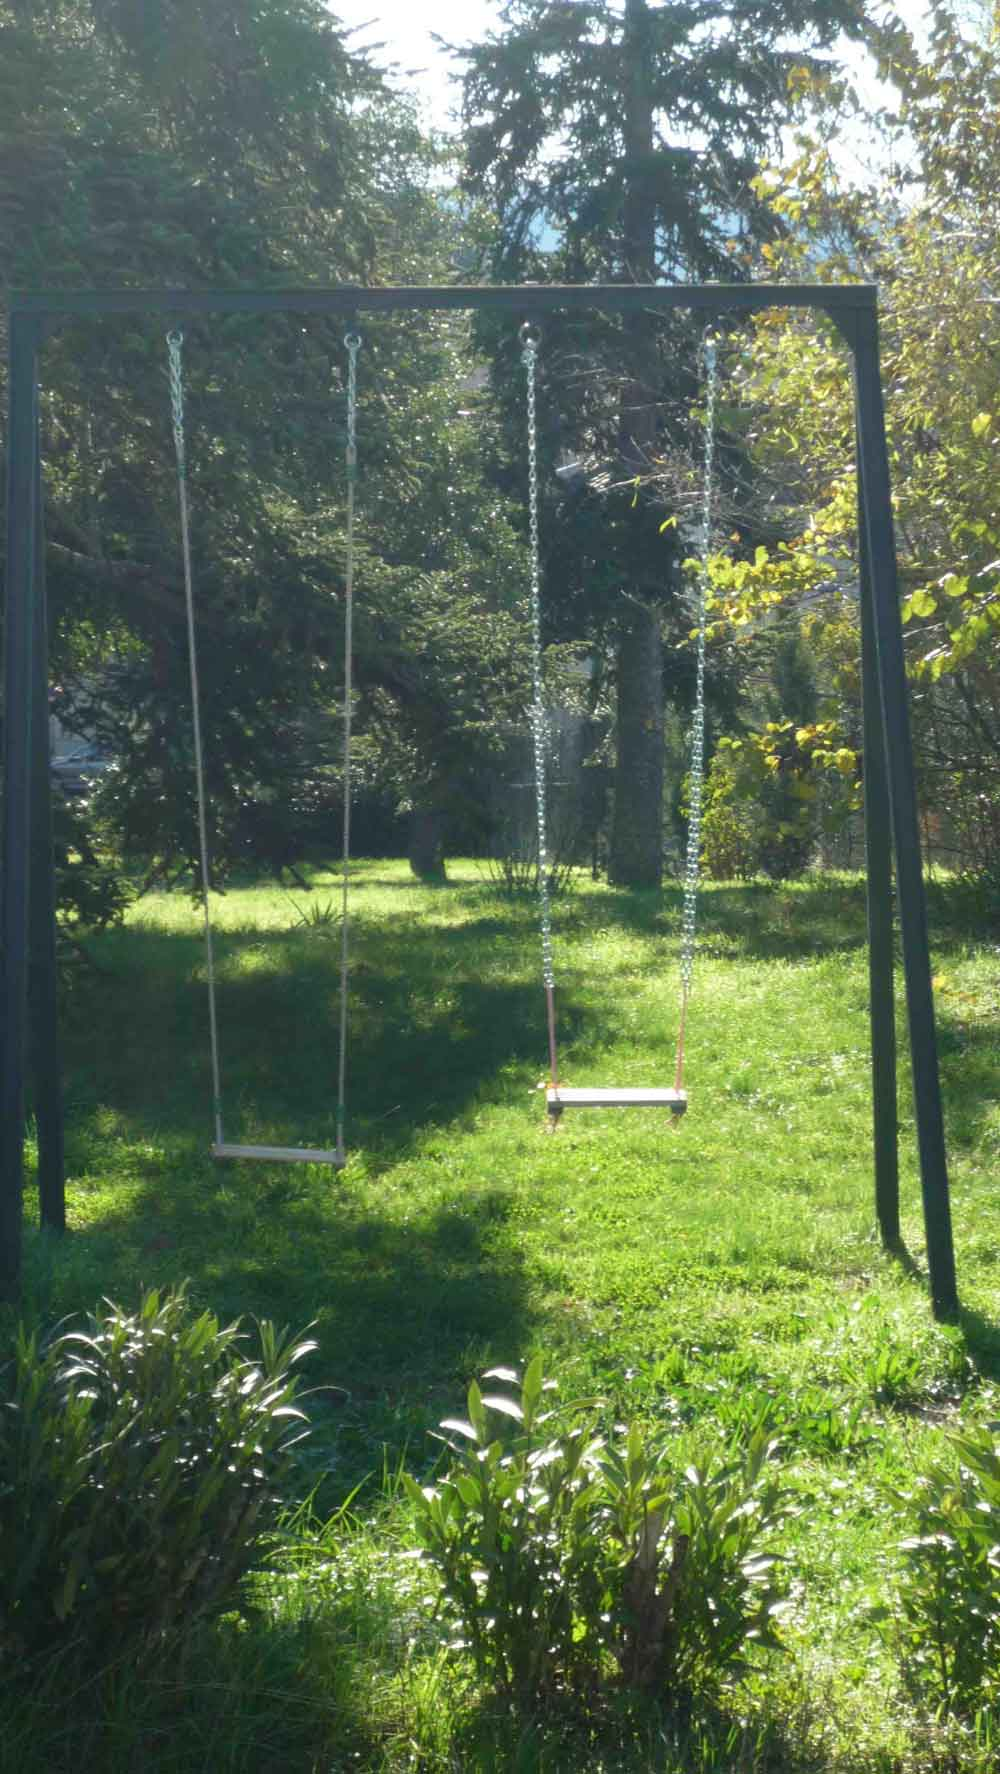 swings for adults and children